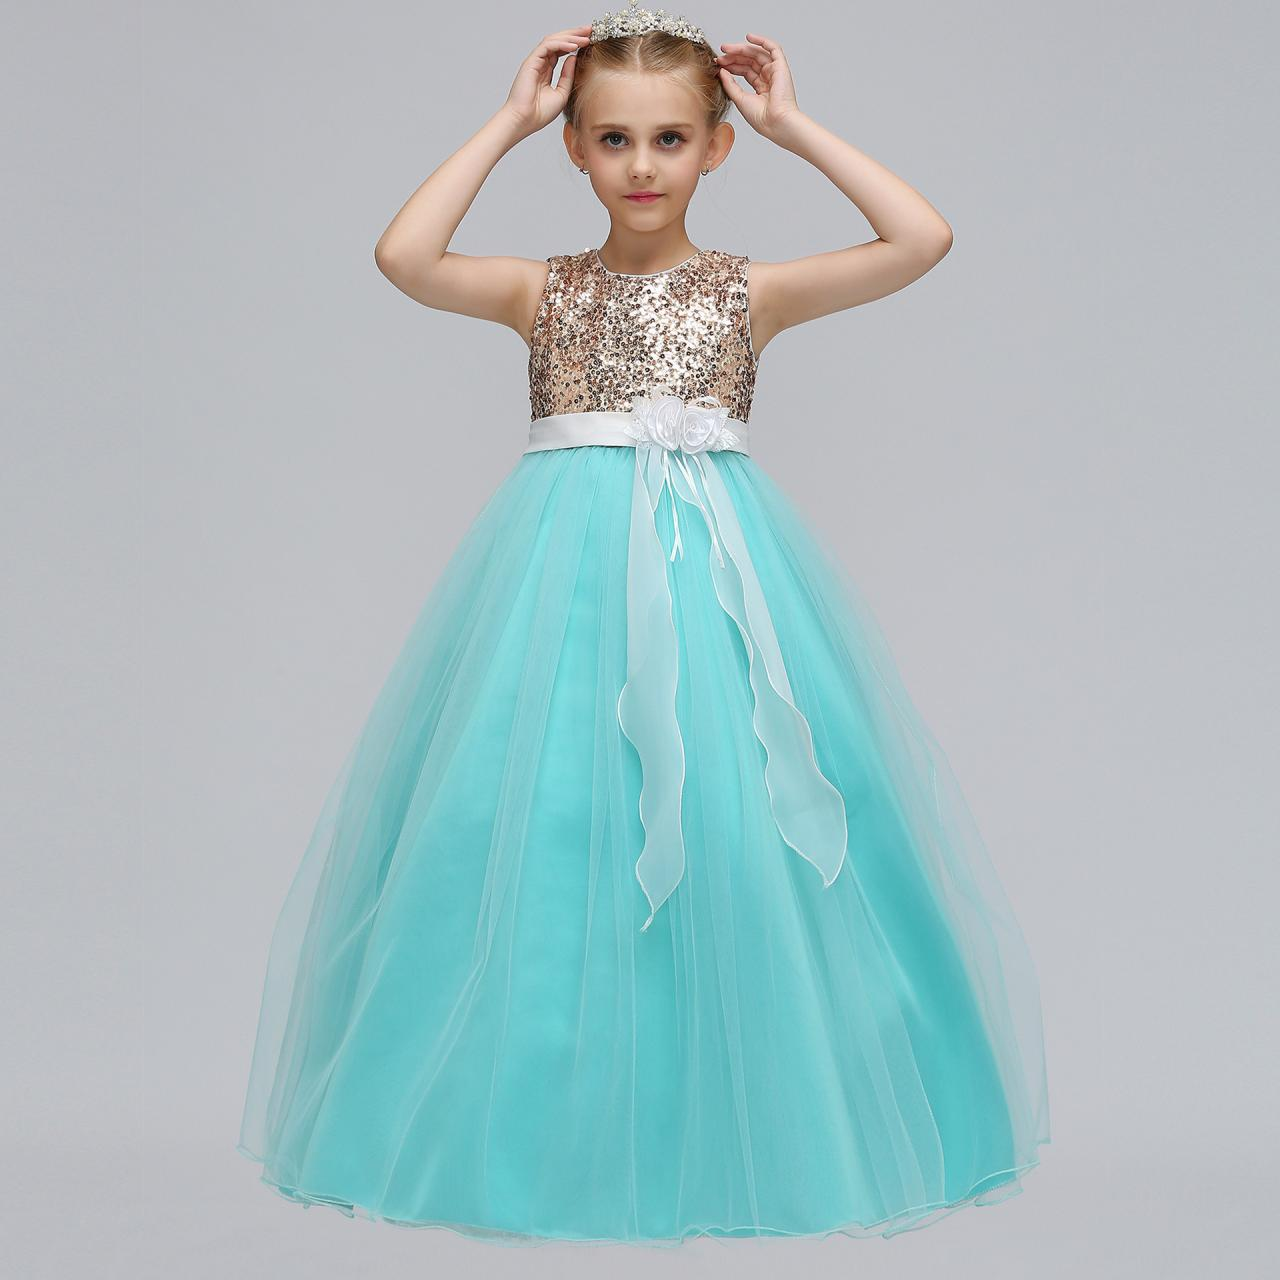 Sequined Long Flower Girl Dress Kids Teens Birthday Party Gowns ...